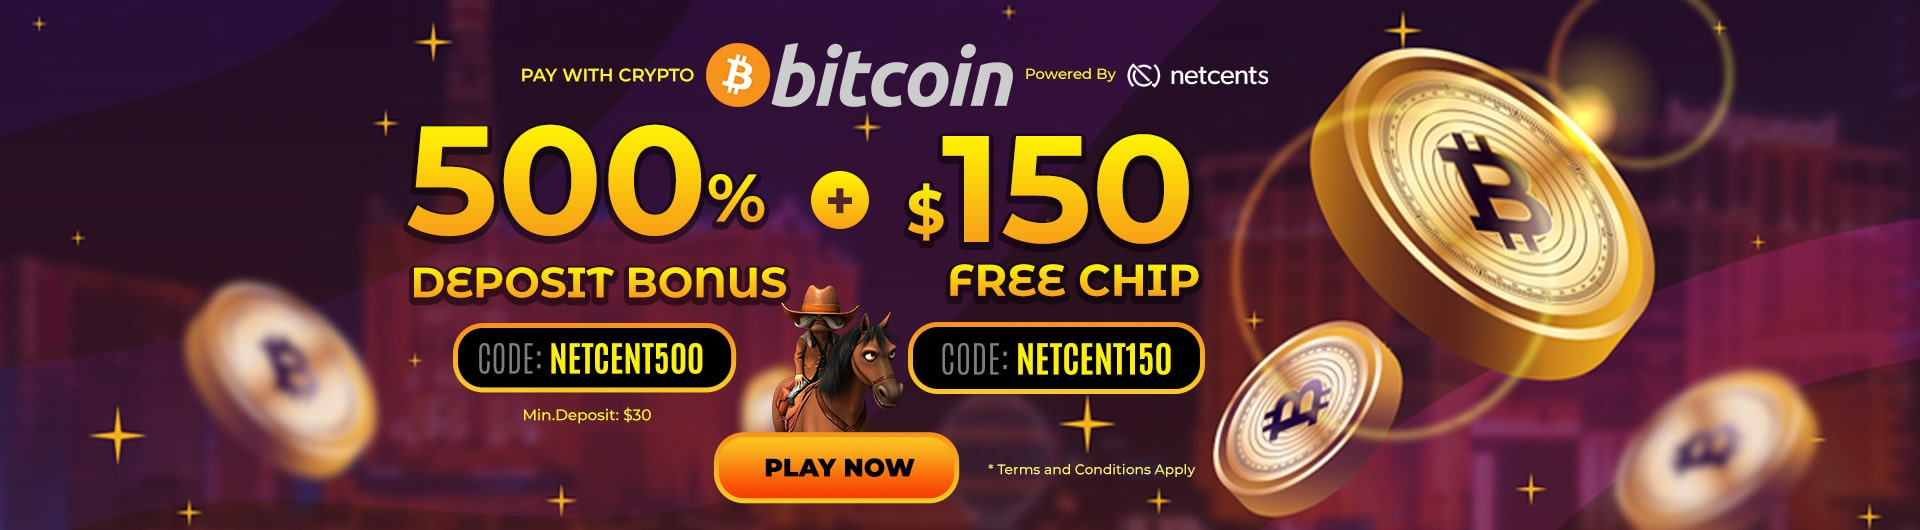 Exclusive Bitcoin Promotions from Slots 7 Casino